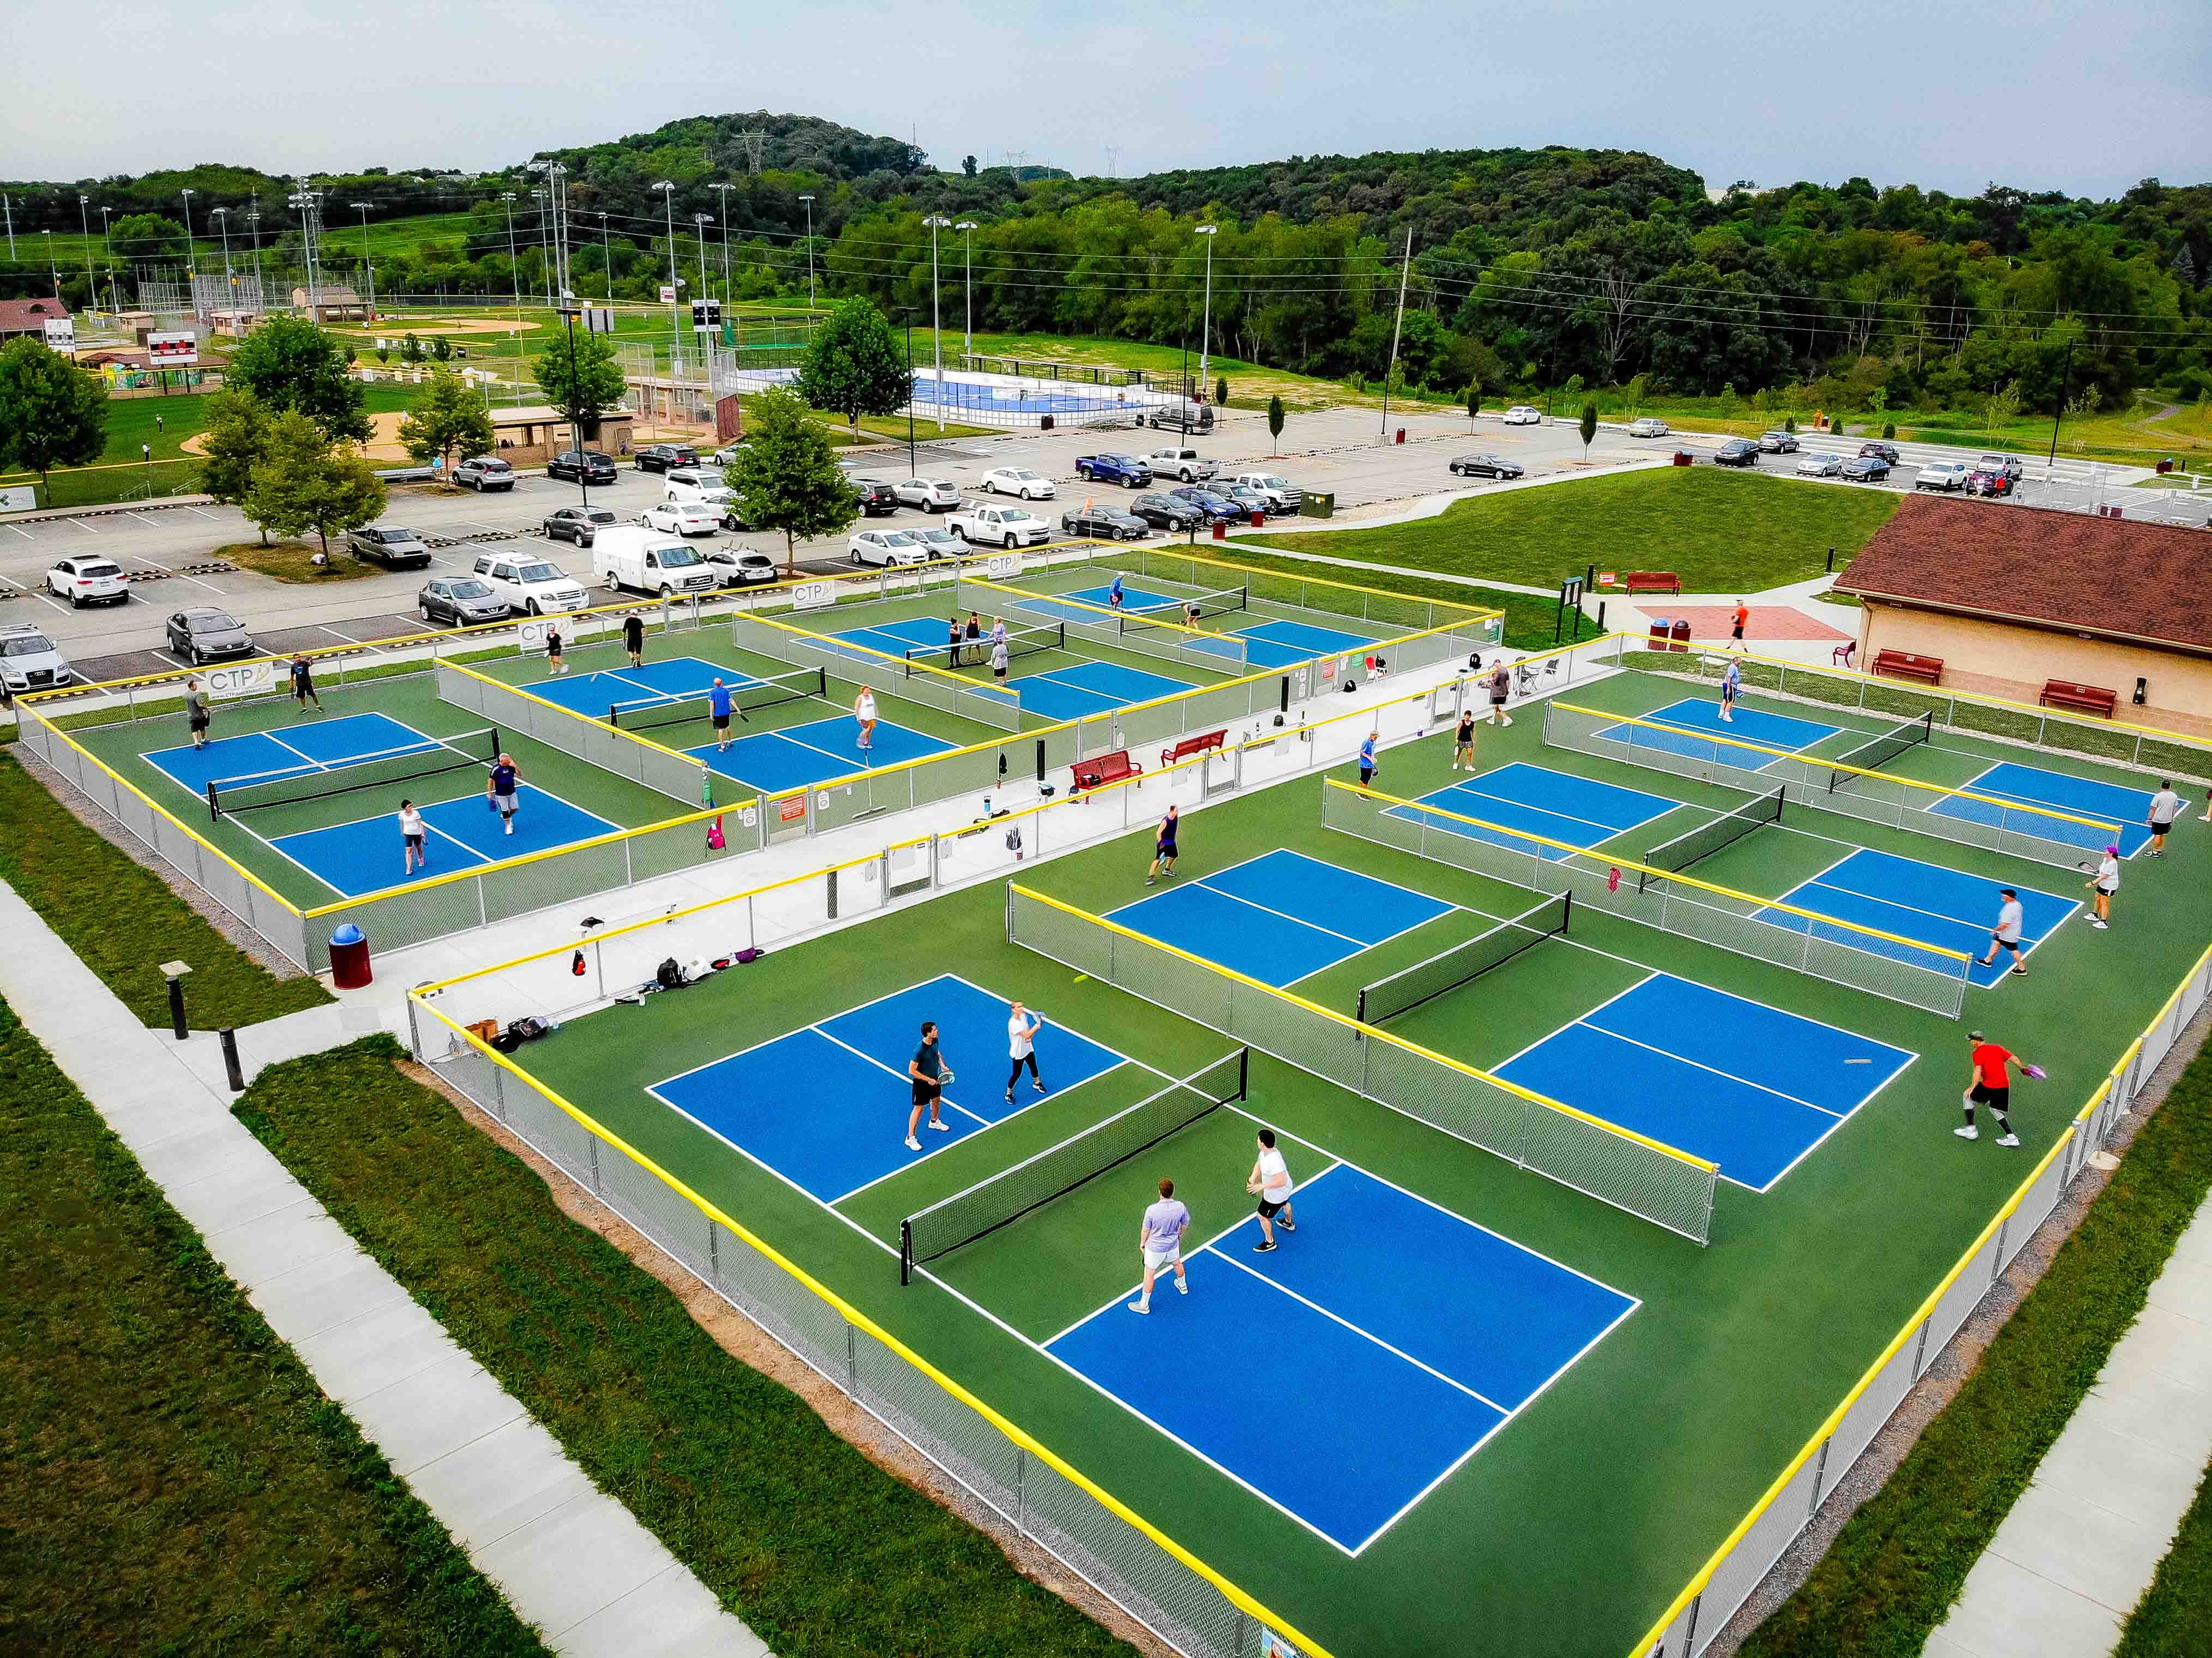 PB courts and players